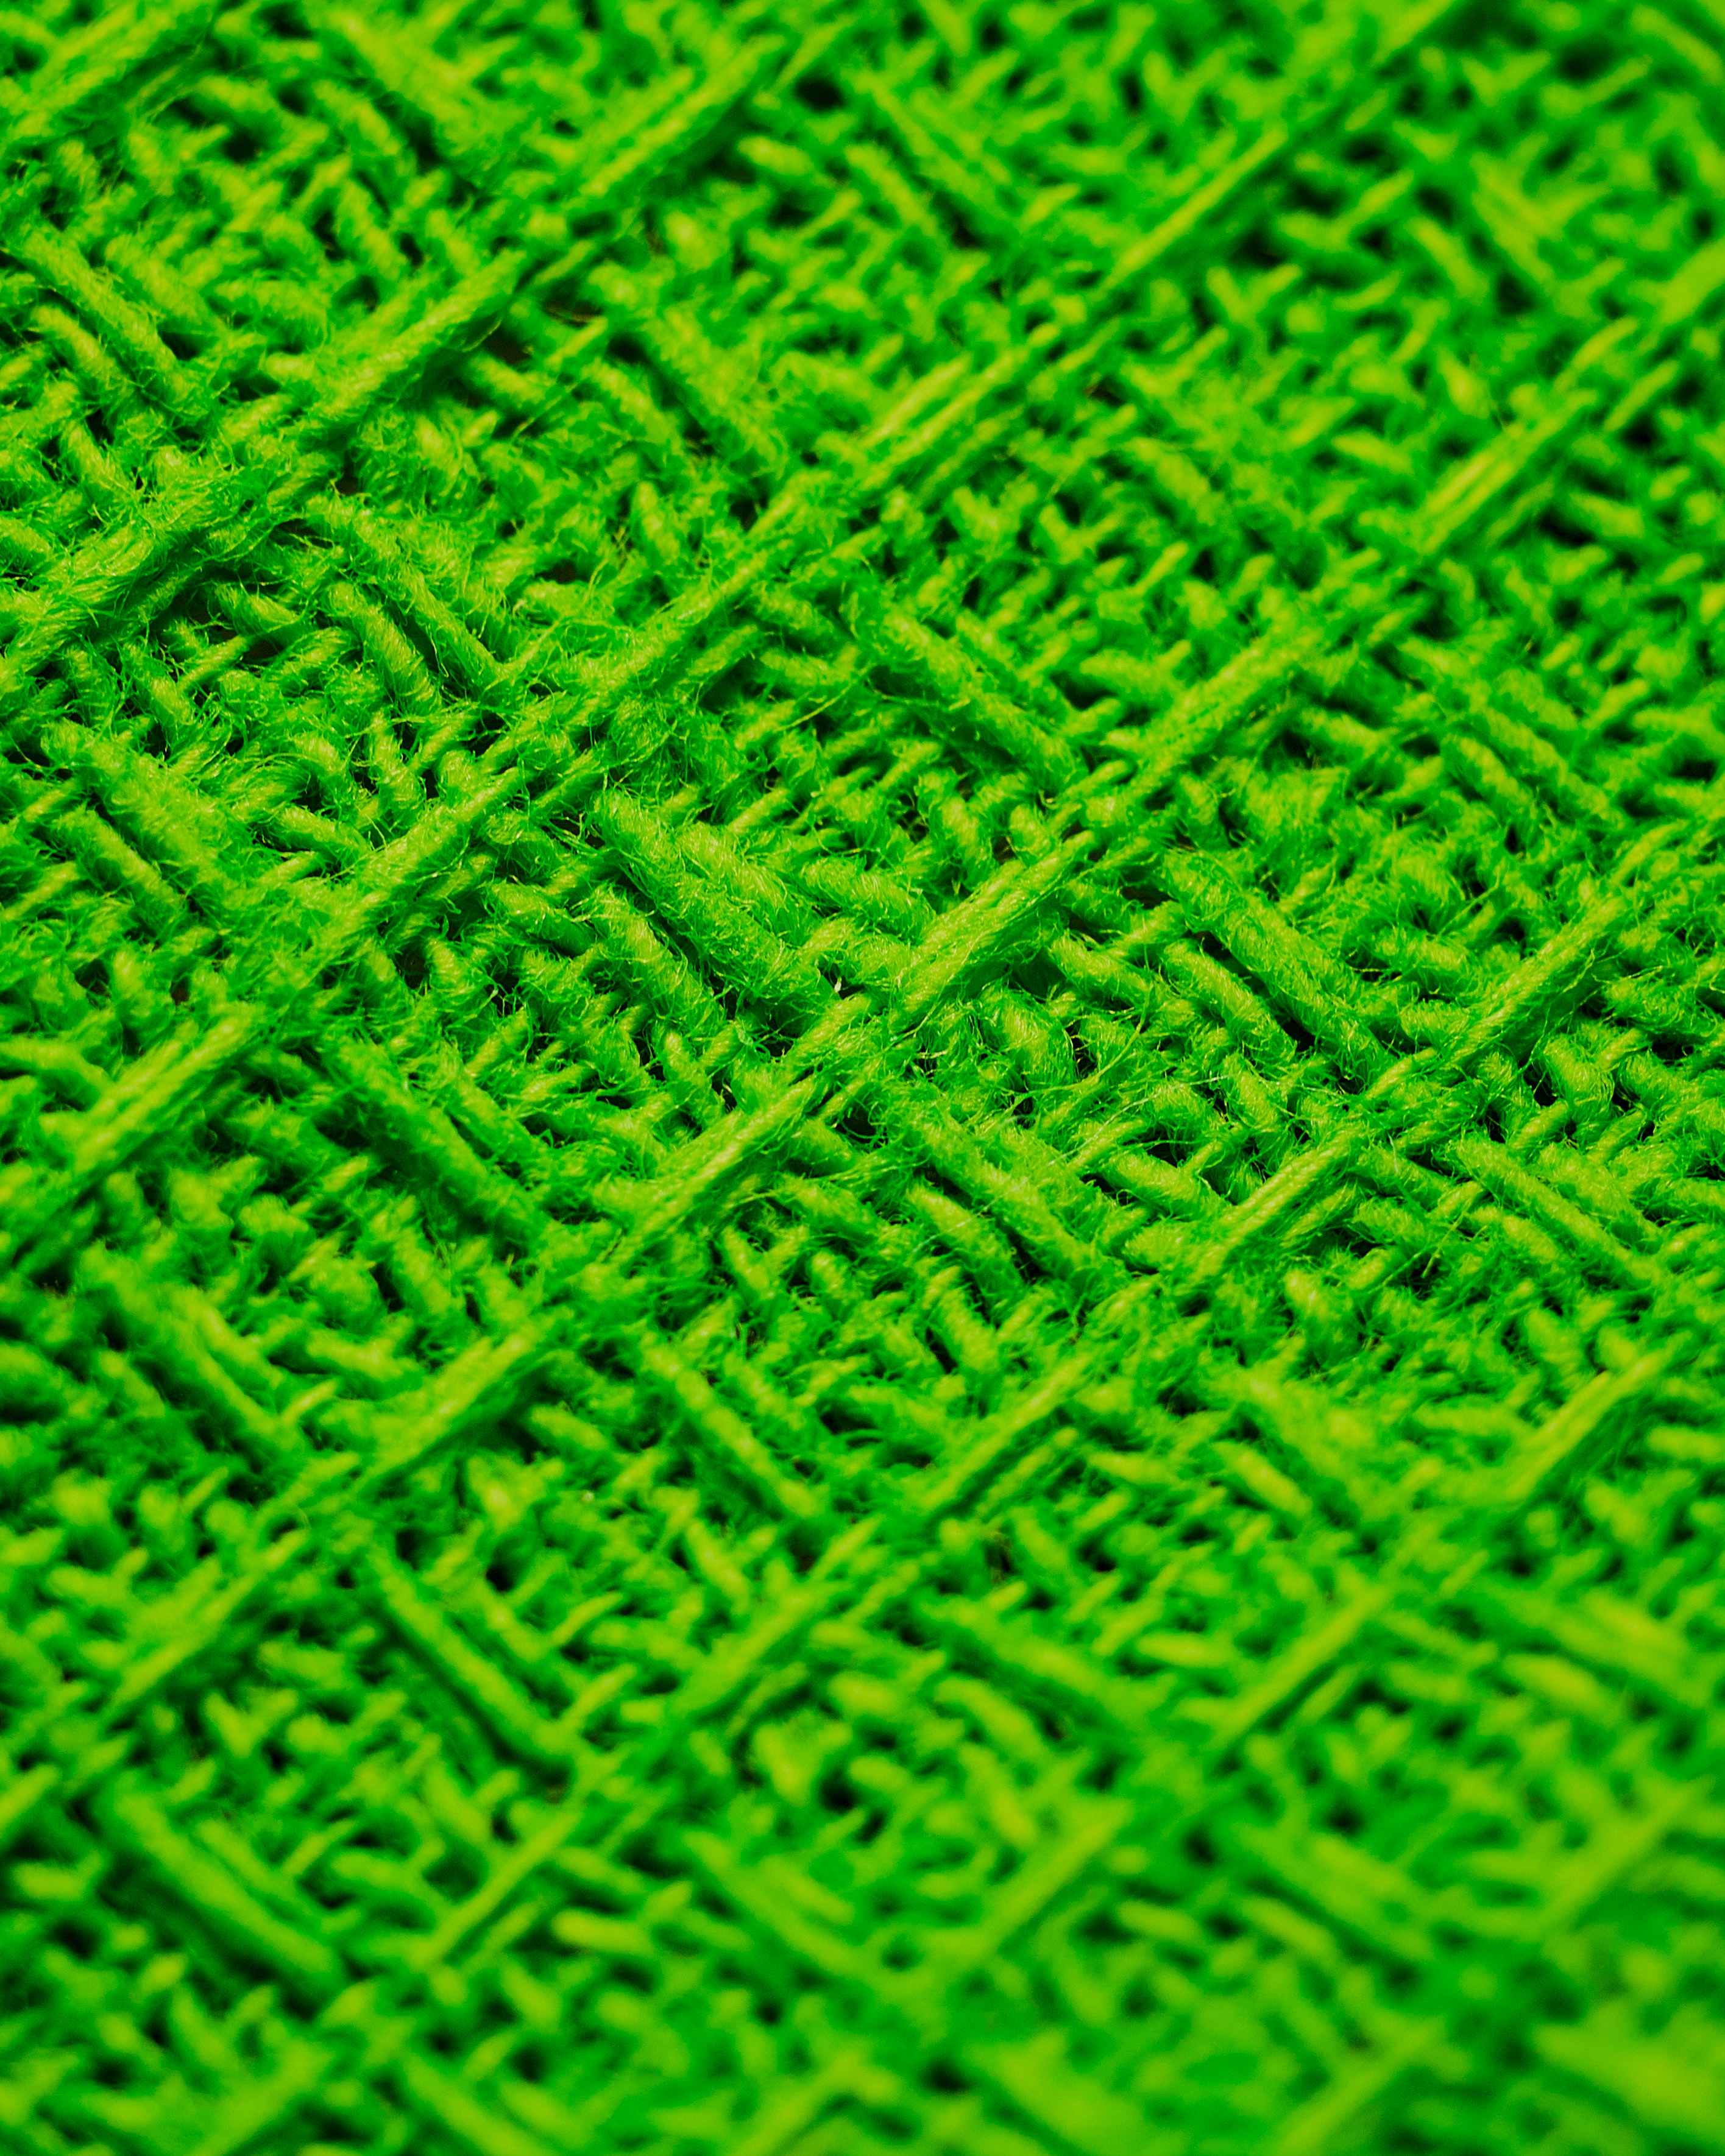 75350 Screensavers and Wallpapers Wool for phone. Download Texture, Textures, Cloth, Wool, Knitted pictures for free